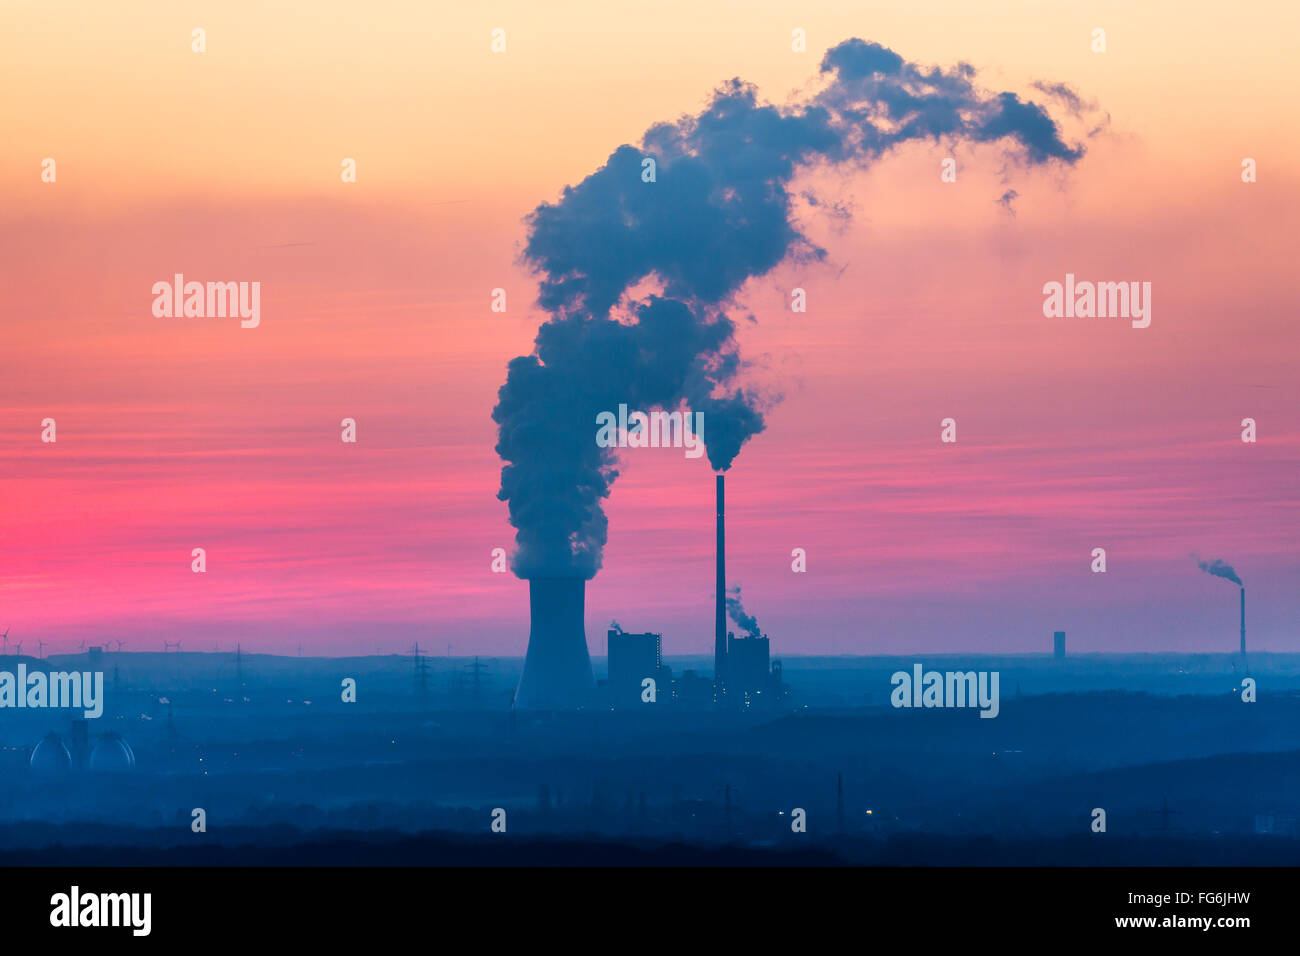 Walsum coal power plant, operated by STEAG, block 9 and 10, in Duisburg, Germany, sunset, - Stock Image